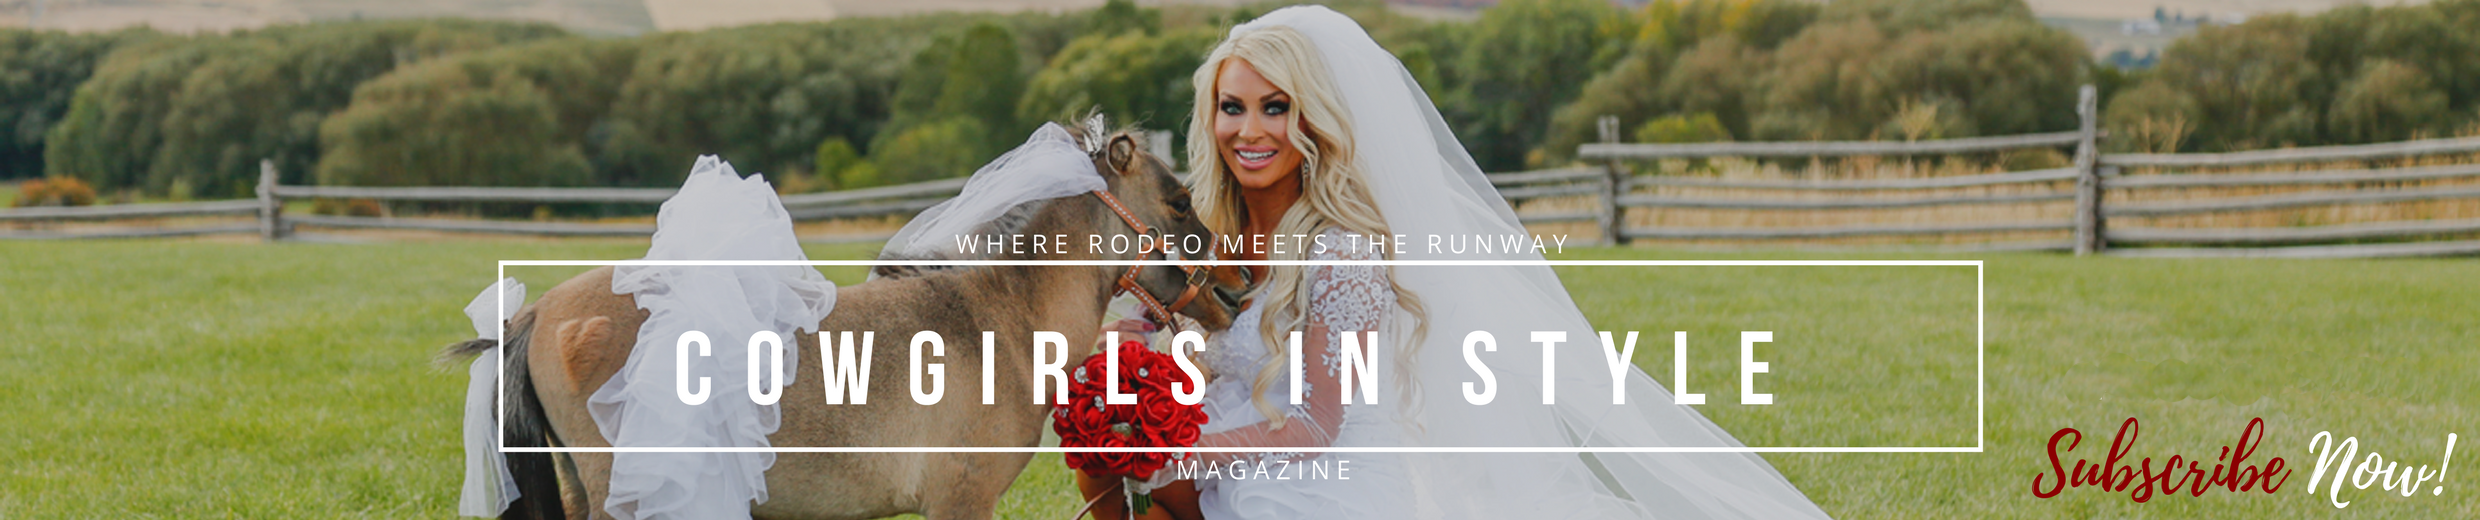 Our Winter Issue Highlights - Cowgirls In Style Magazine